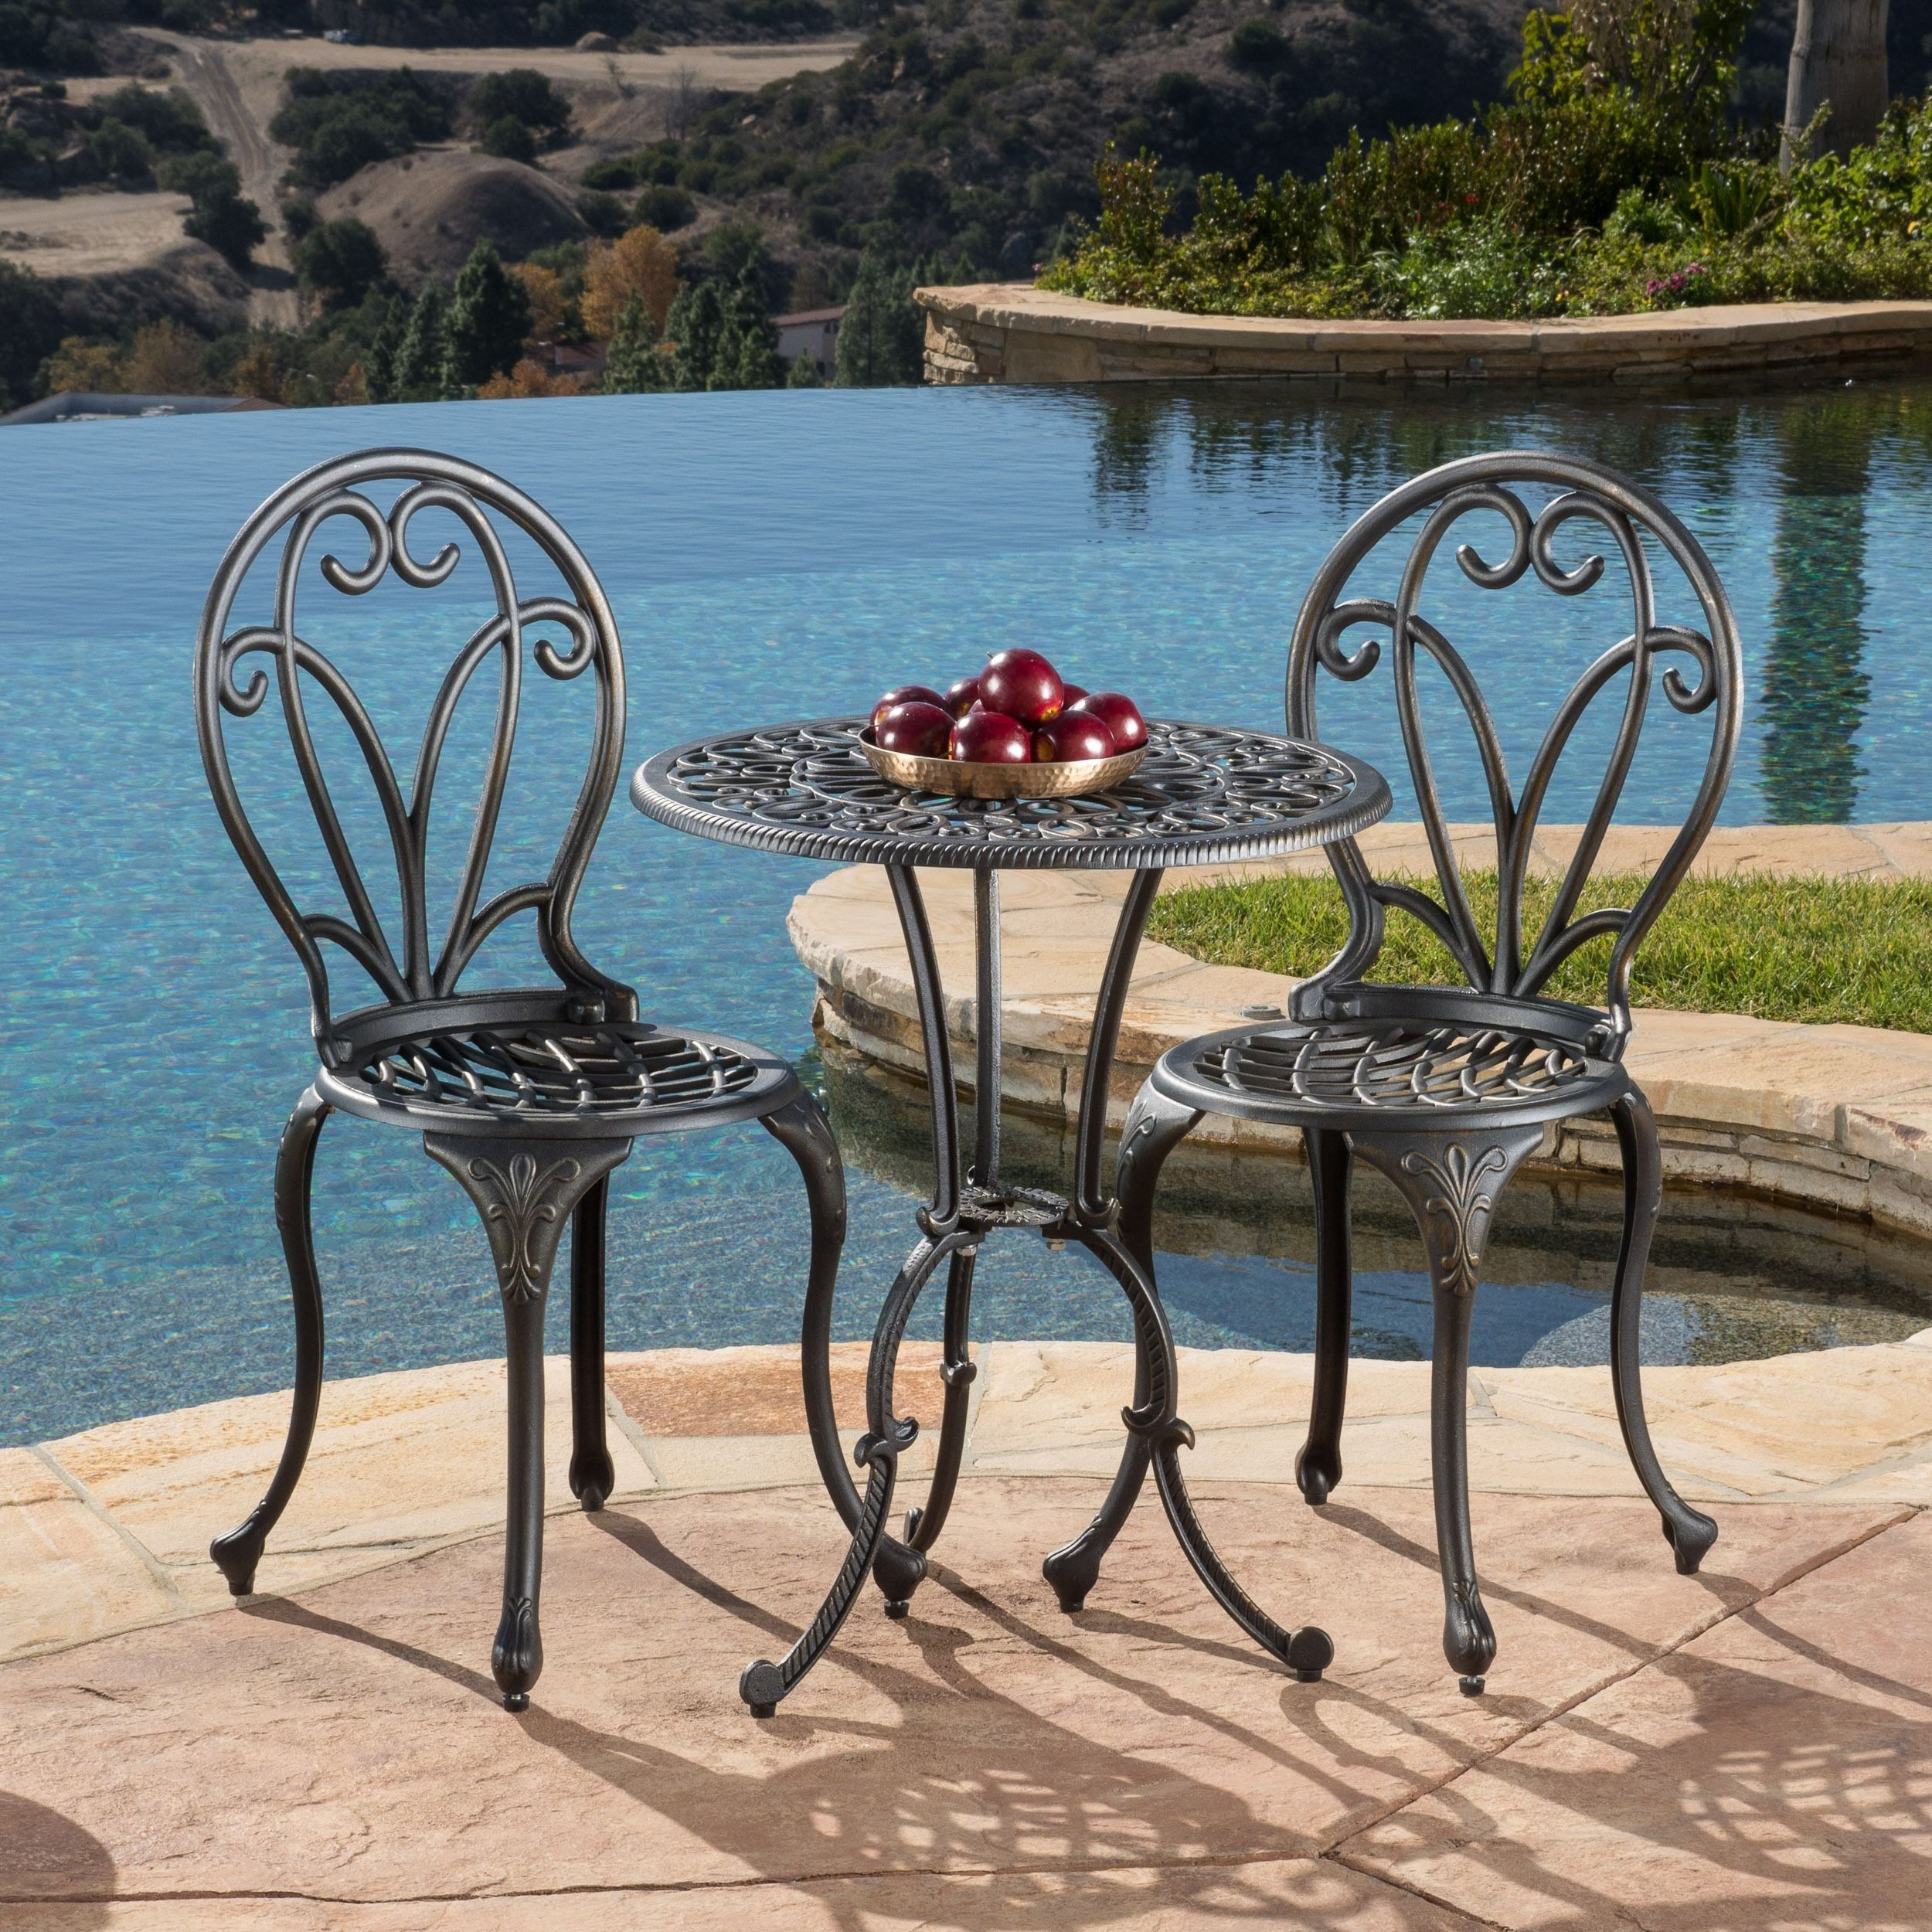 Thomas Cast Aluminum Dark Gold 3 Piece Bistro Set By Christopher Knight Home Patio Furniture